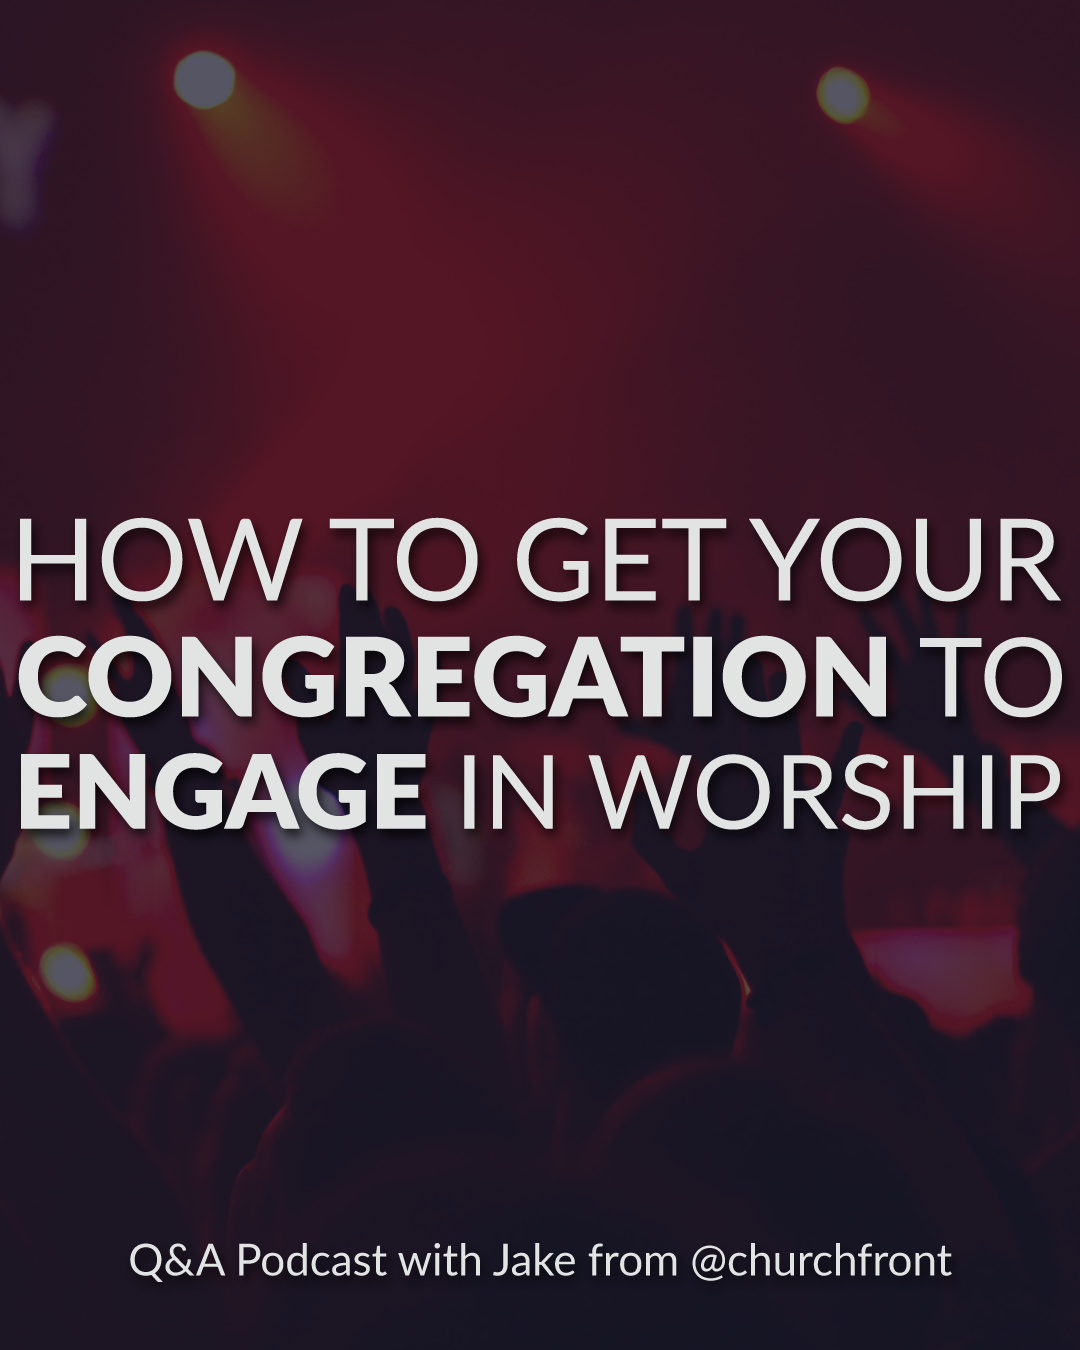 How To Get Your Congregation To Engage In Worship